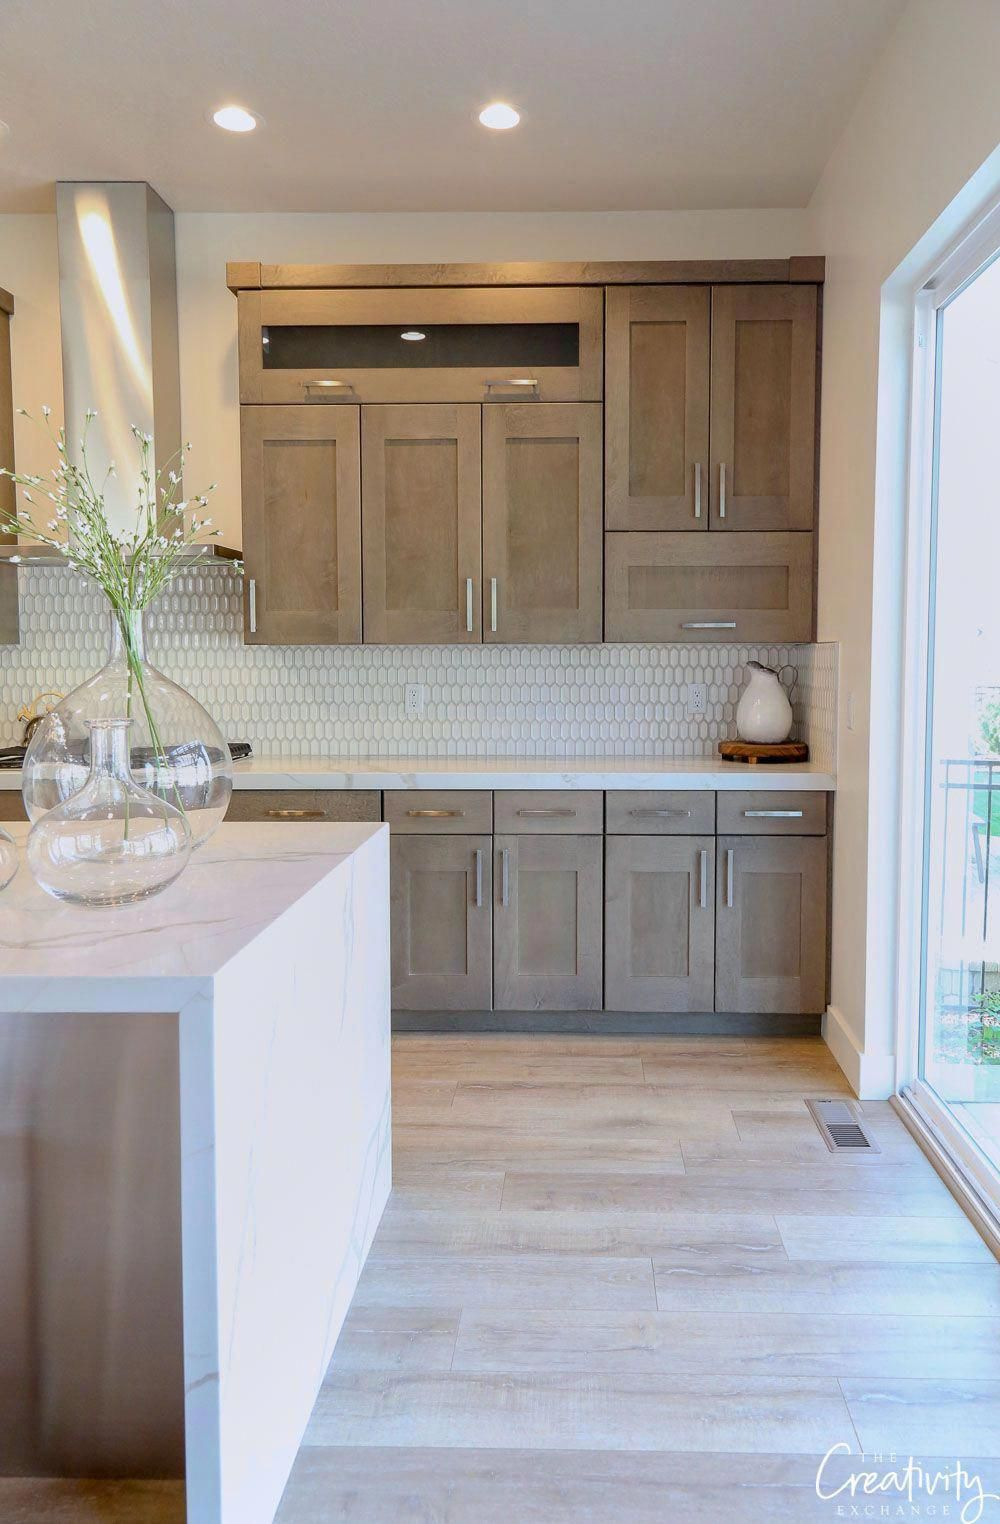 natural wood kitchen cabinetry bathroomcabinet dreamkitchen home decor kitchen kitchen on kitchen cabinets natural wood id=59823